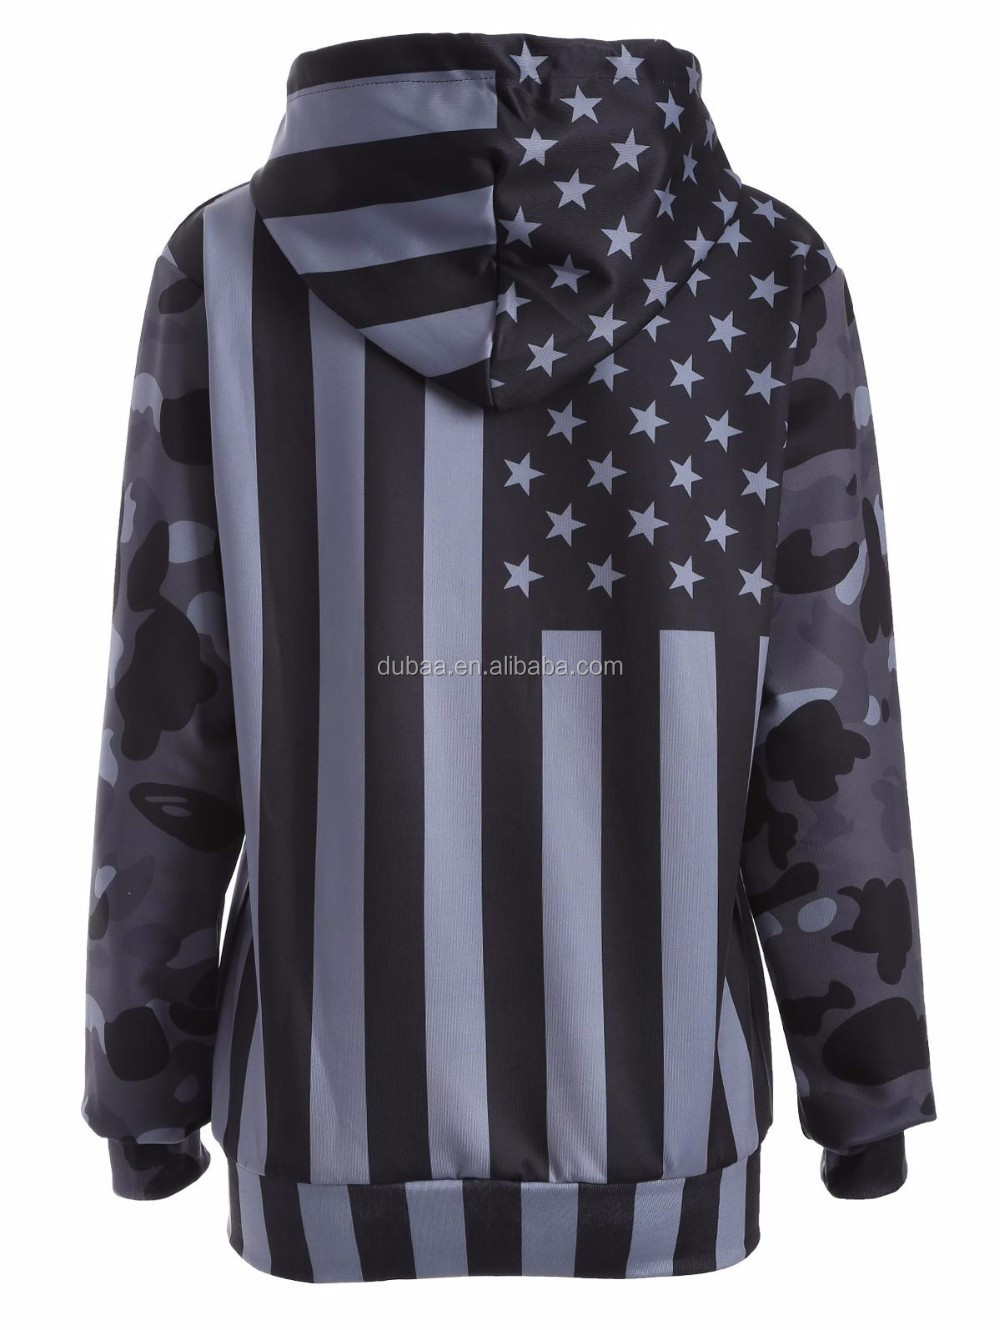 Unisex Fashion USA American Flag Print Hooded Slim Pullover Hoodie Sweatshirt